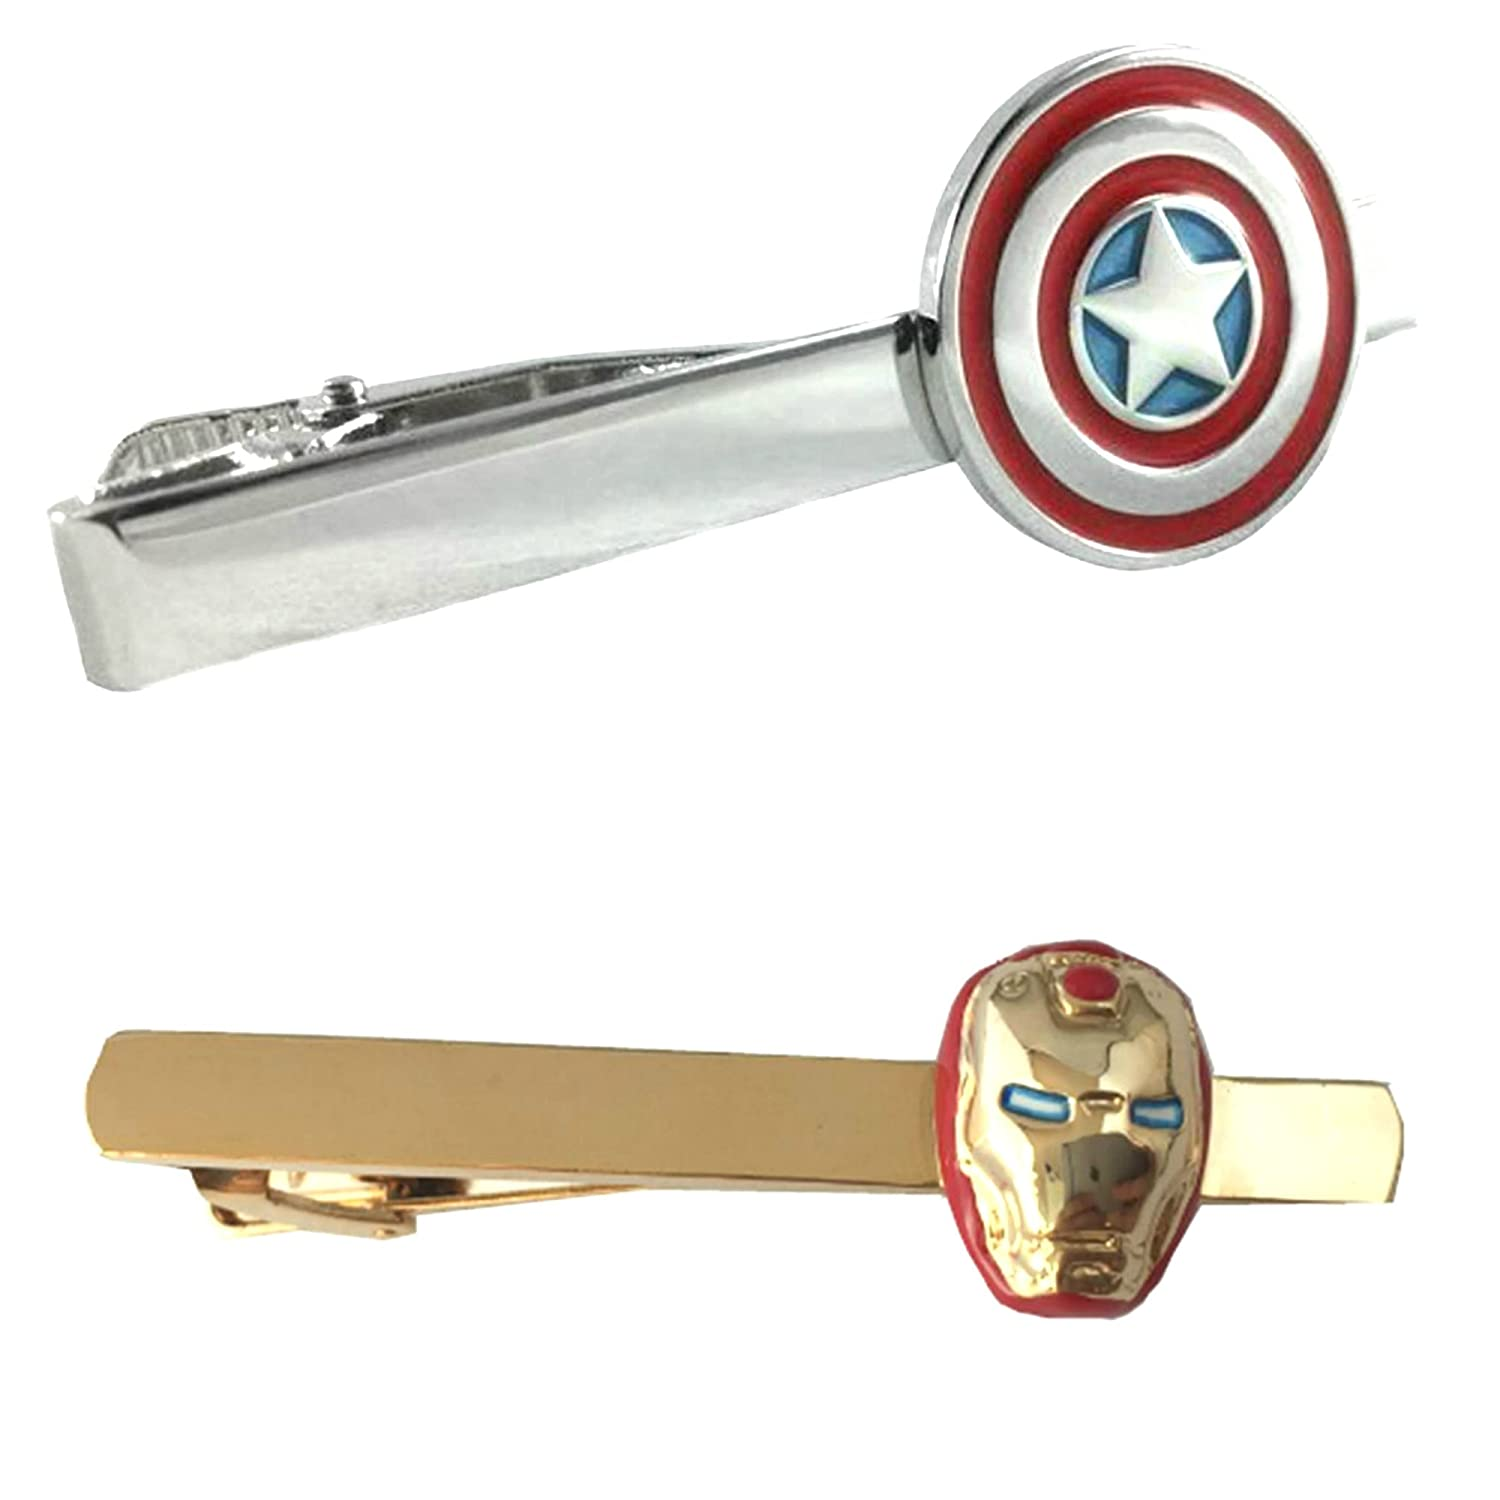 Outlander Marvel Comics - Captain America & Ironman - Tiebar Tie Clasp Set of 2 Wedding Superhero Logo w/Gift Box Outlander Brand